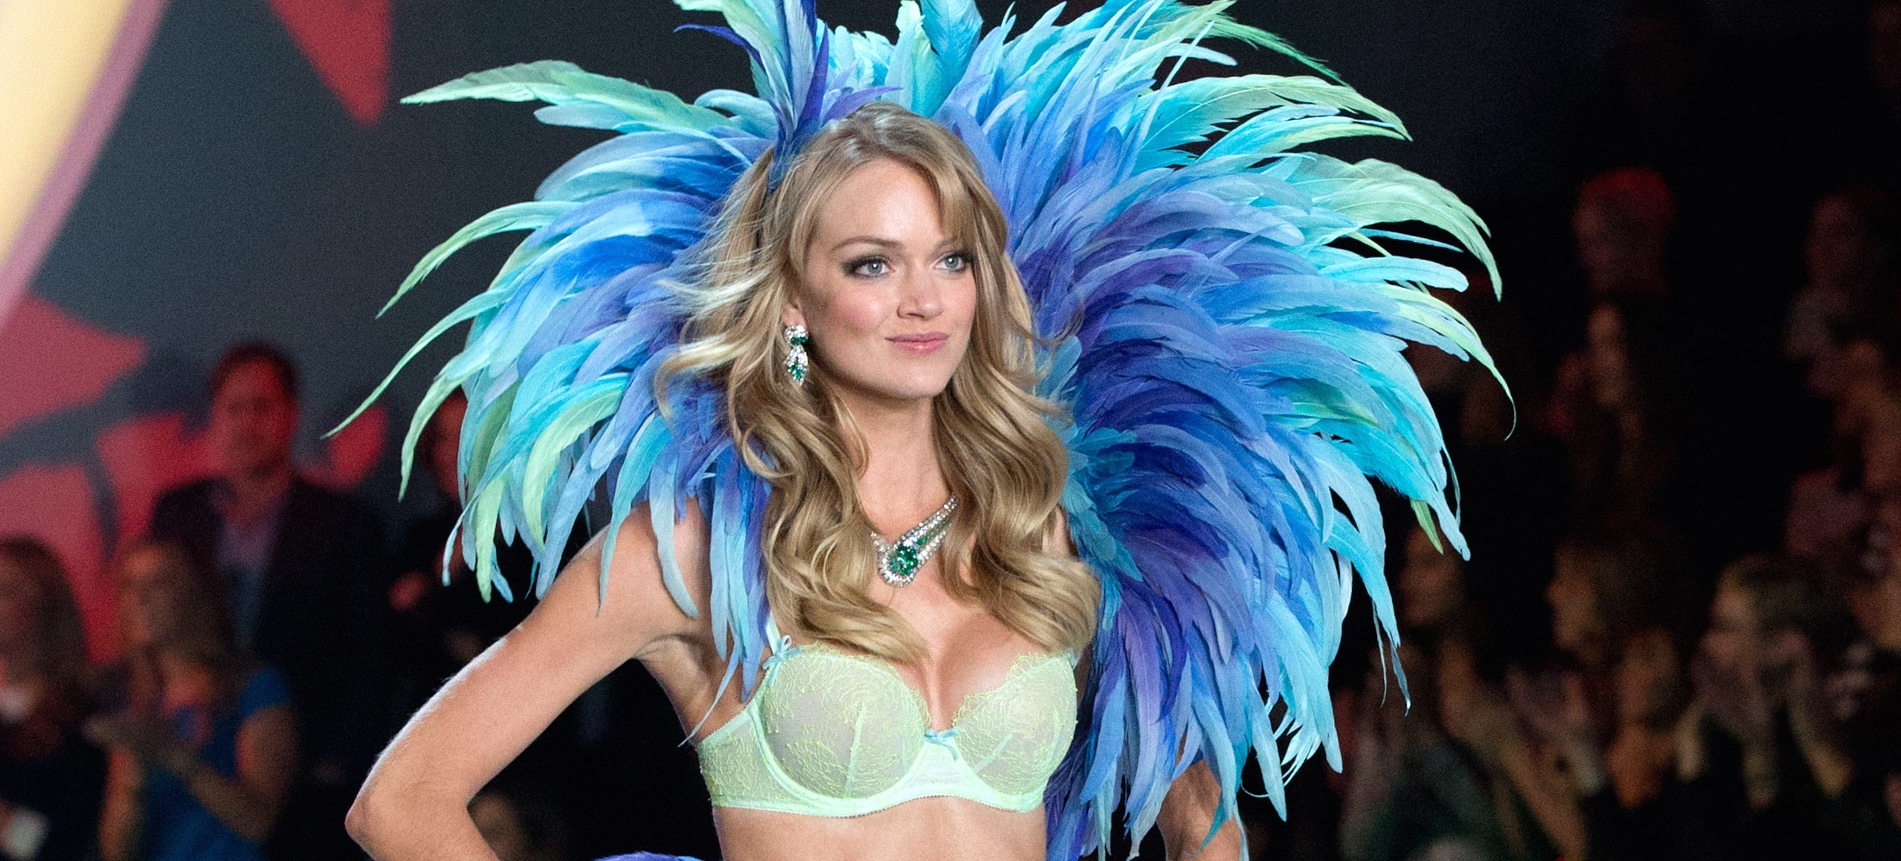 VS Model Lindsay Ellingson Shares Her Top 8 Beauty Essentials